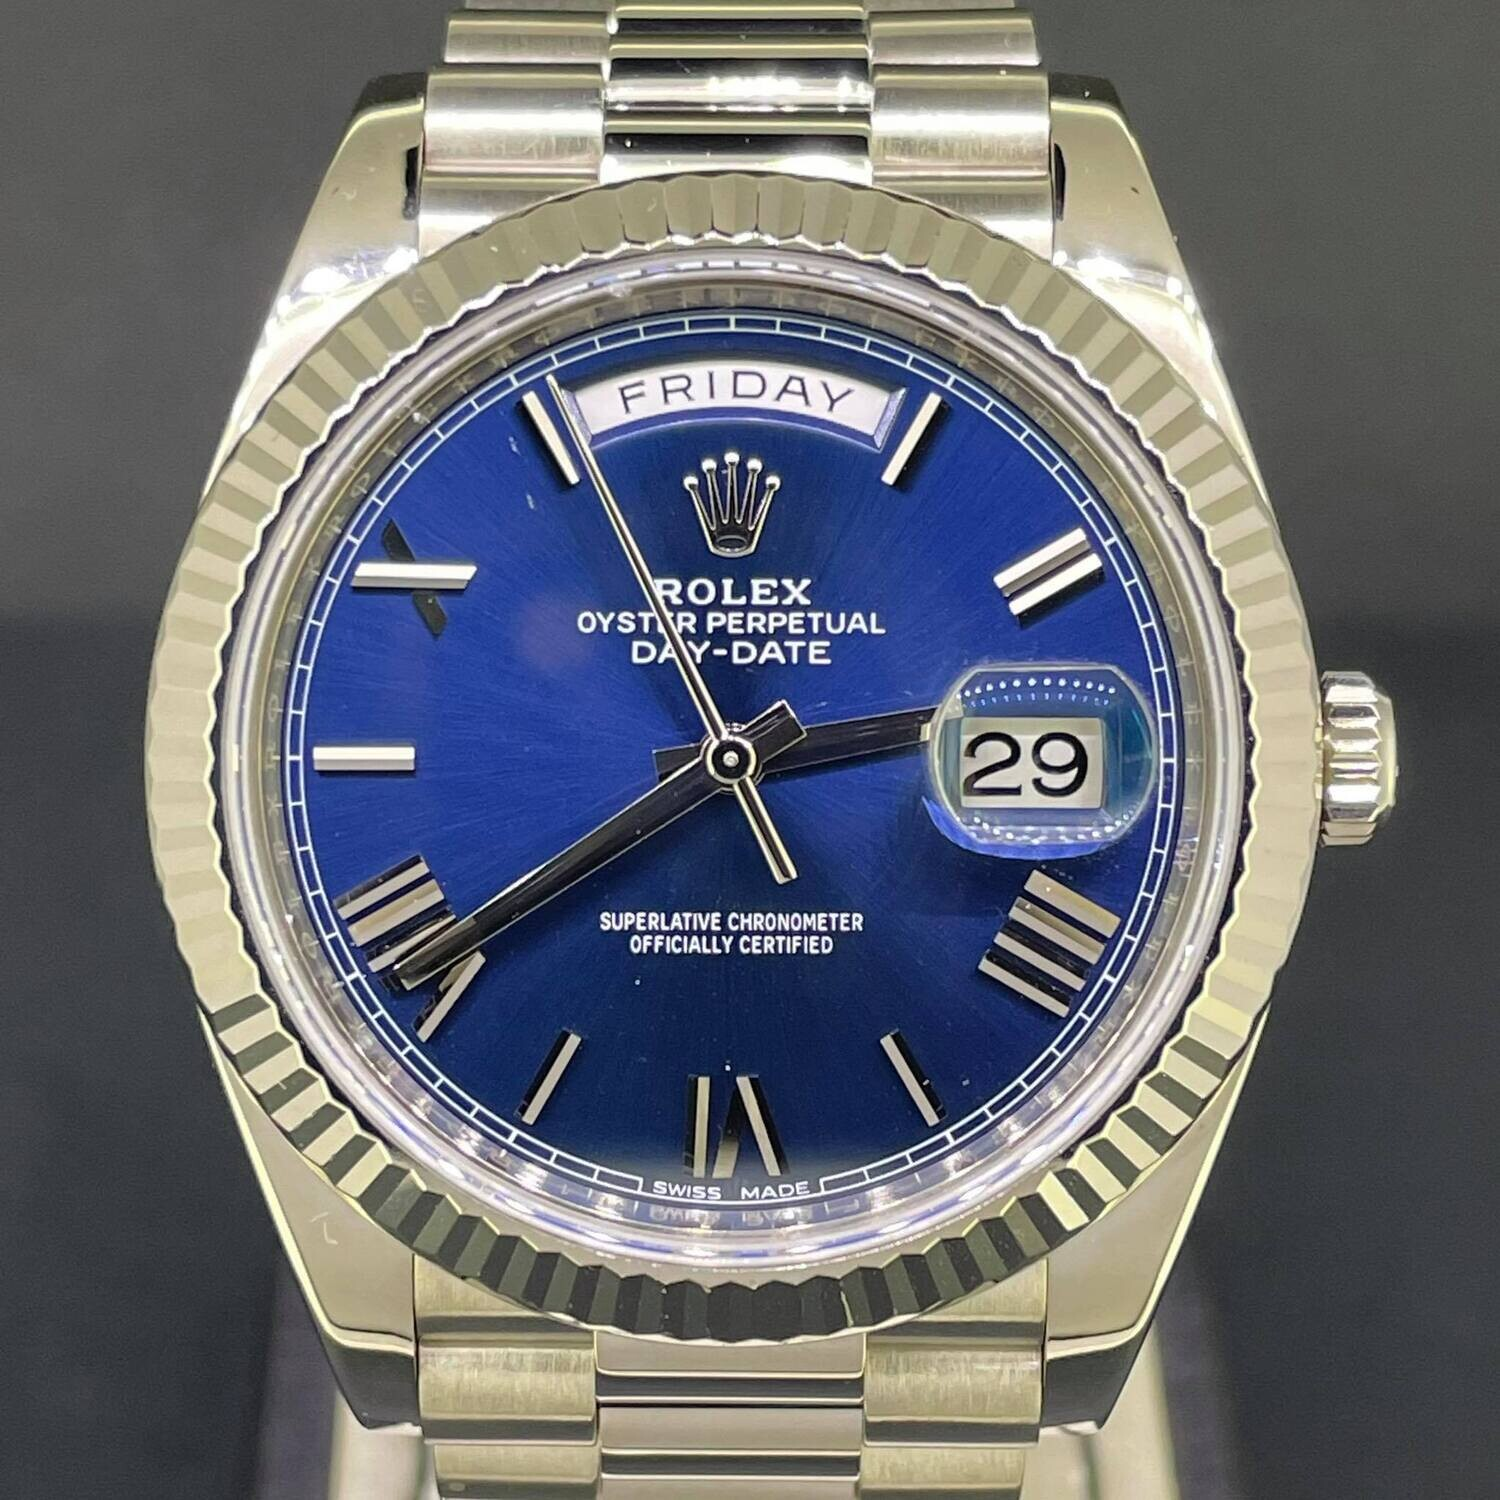 Rolex Day-Date 40MM 18K White Gold Blue Roman Dial B&P2016 Fullset PERFECT Condition